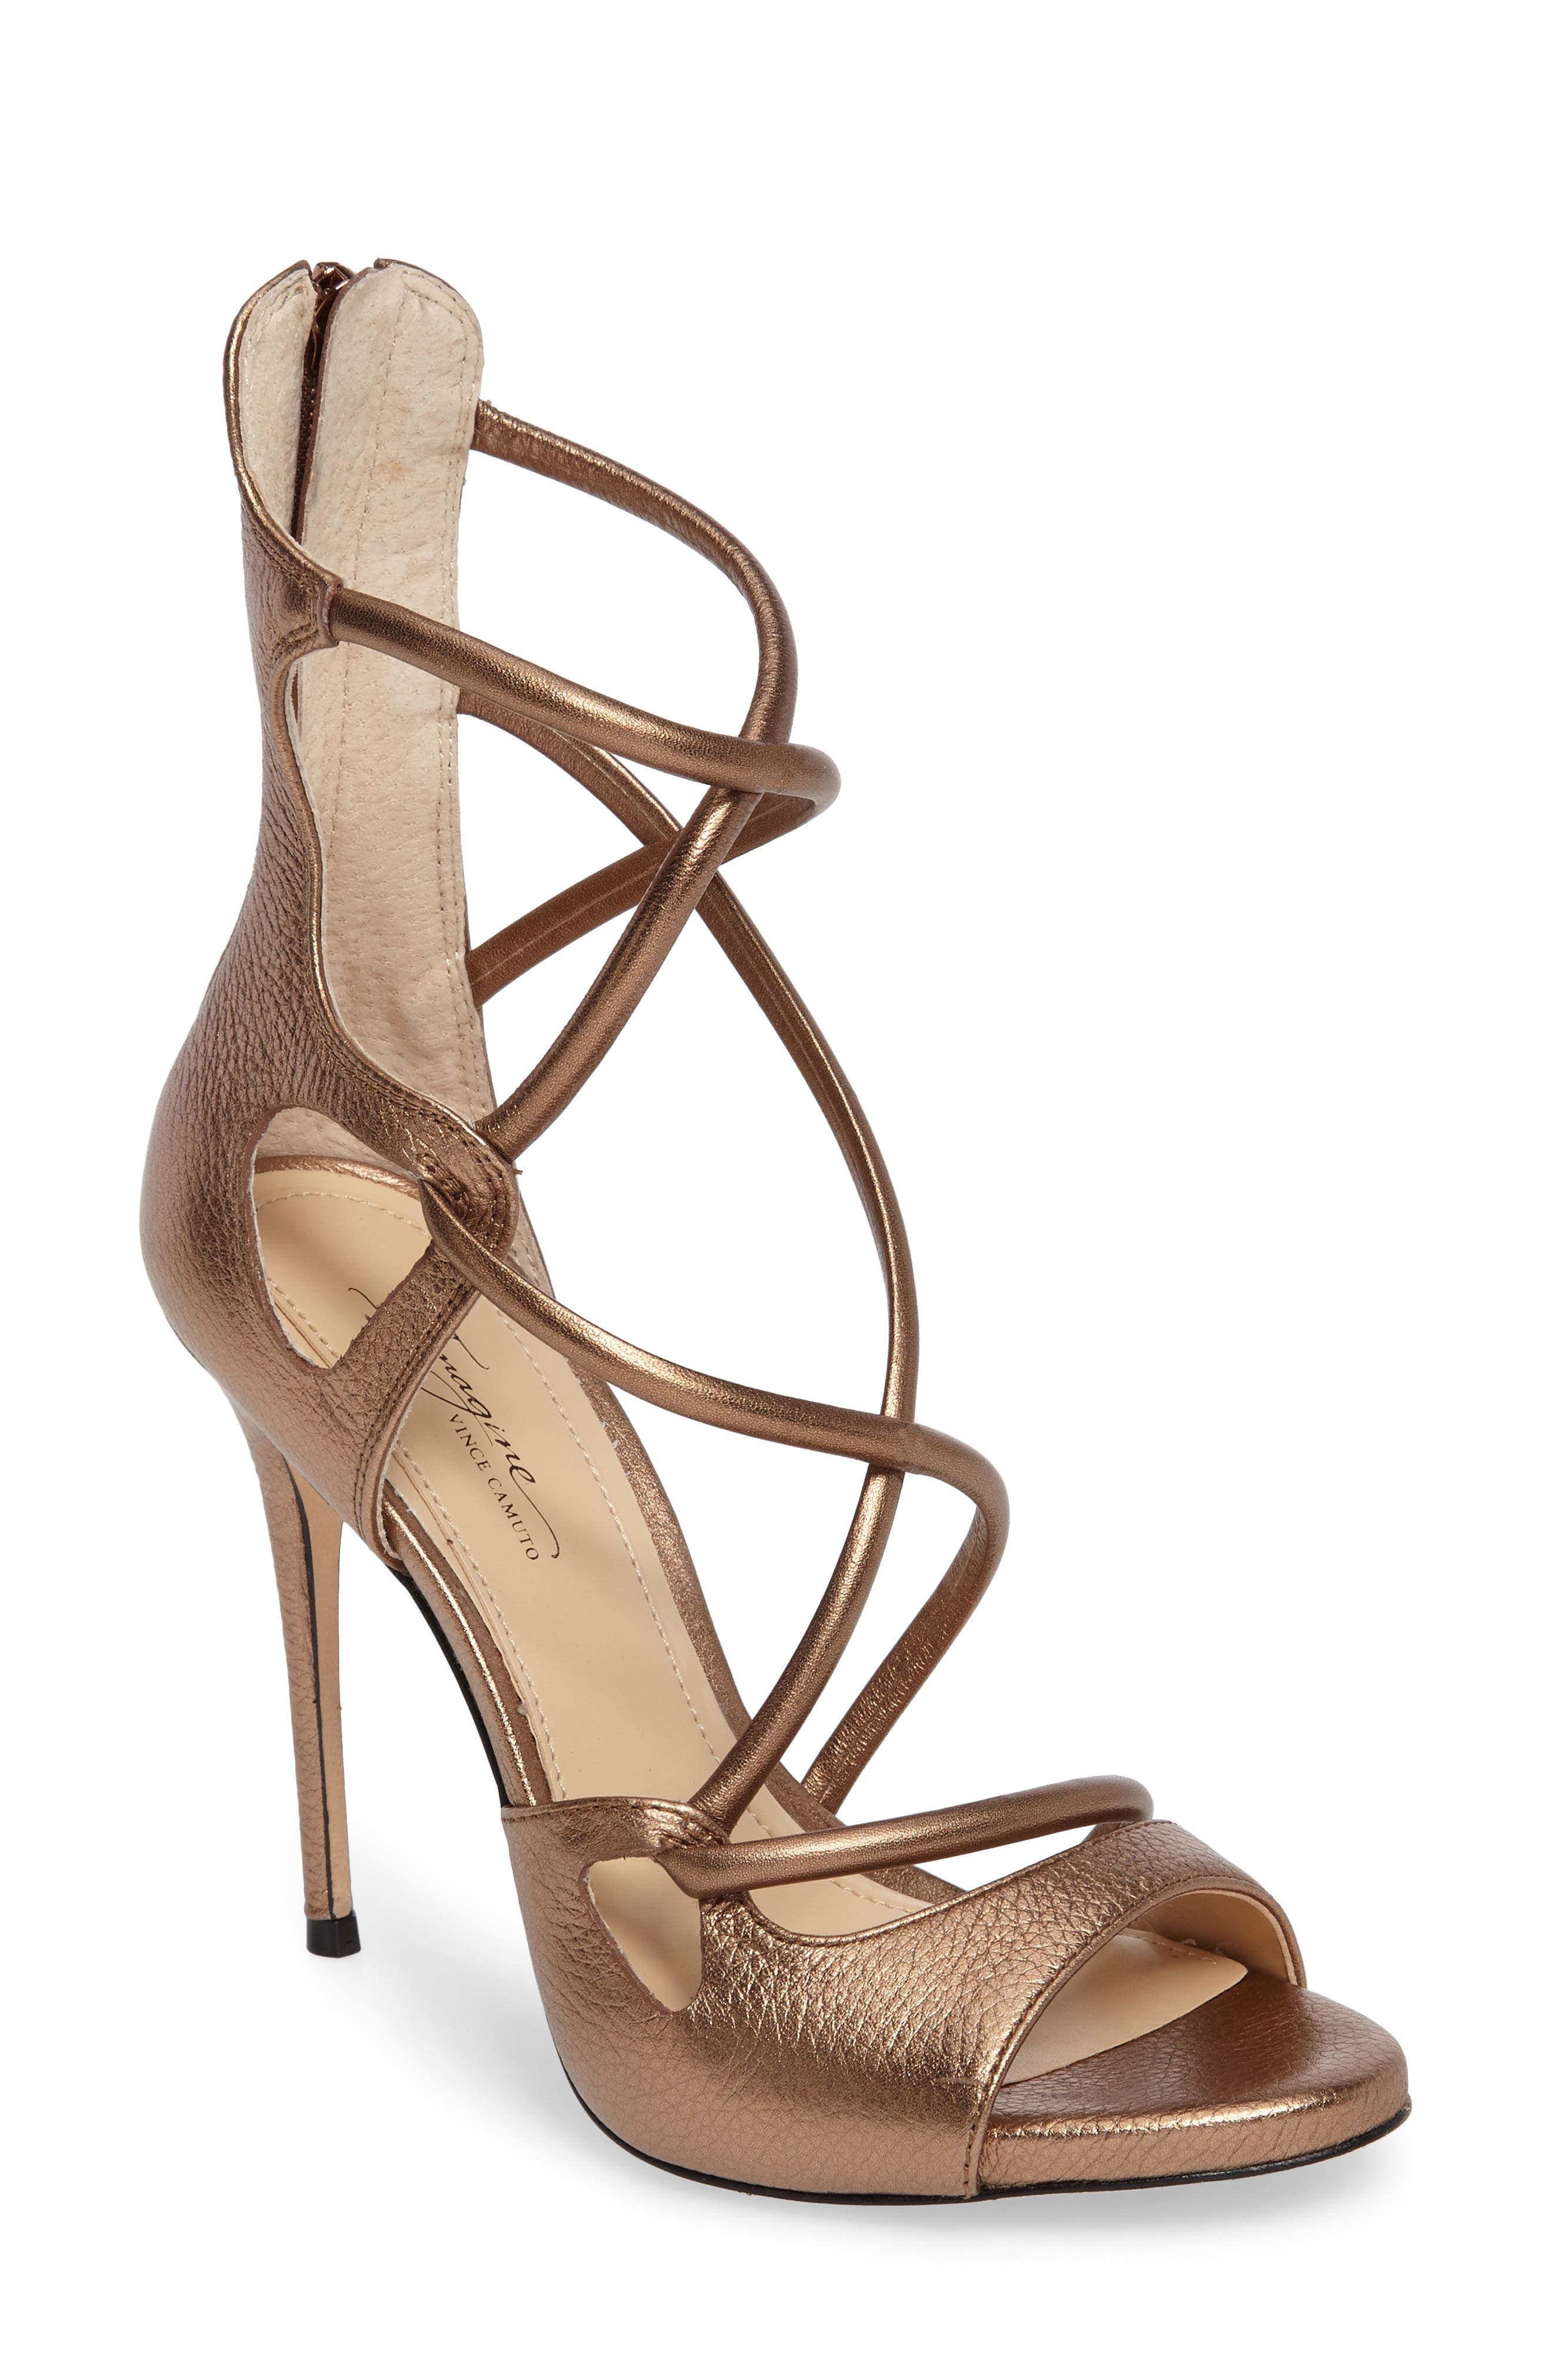 Main Image - Imagine by Vince Camuto Dalle Sandal (Women)